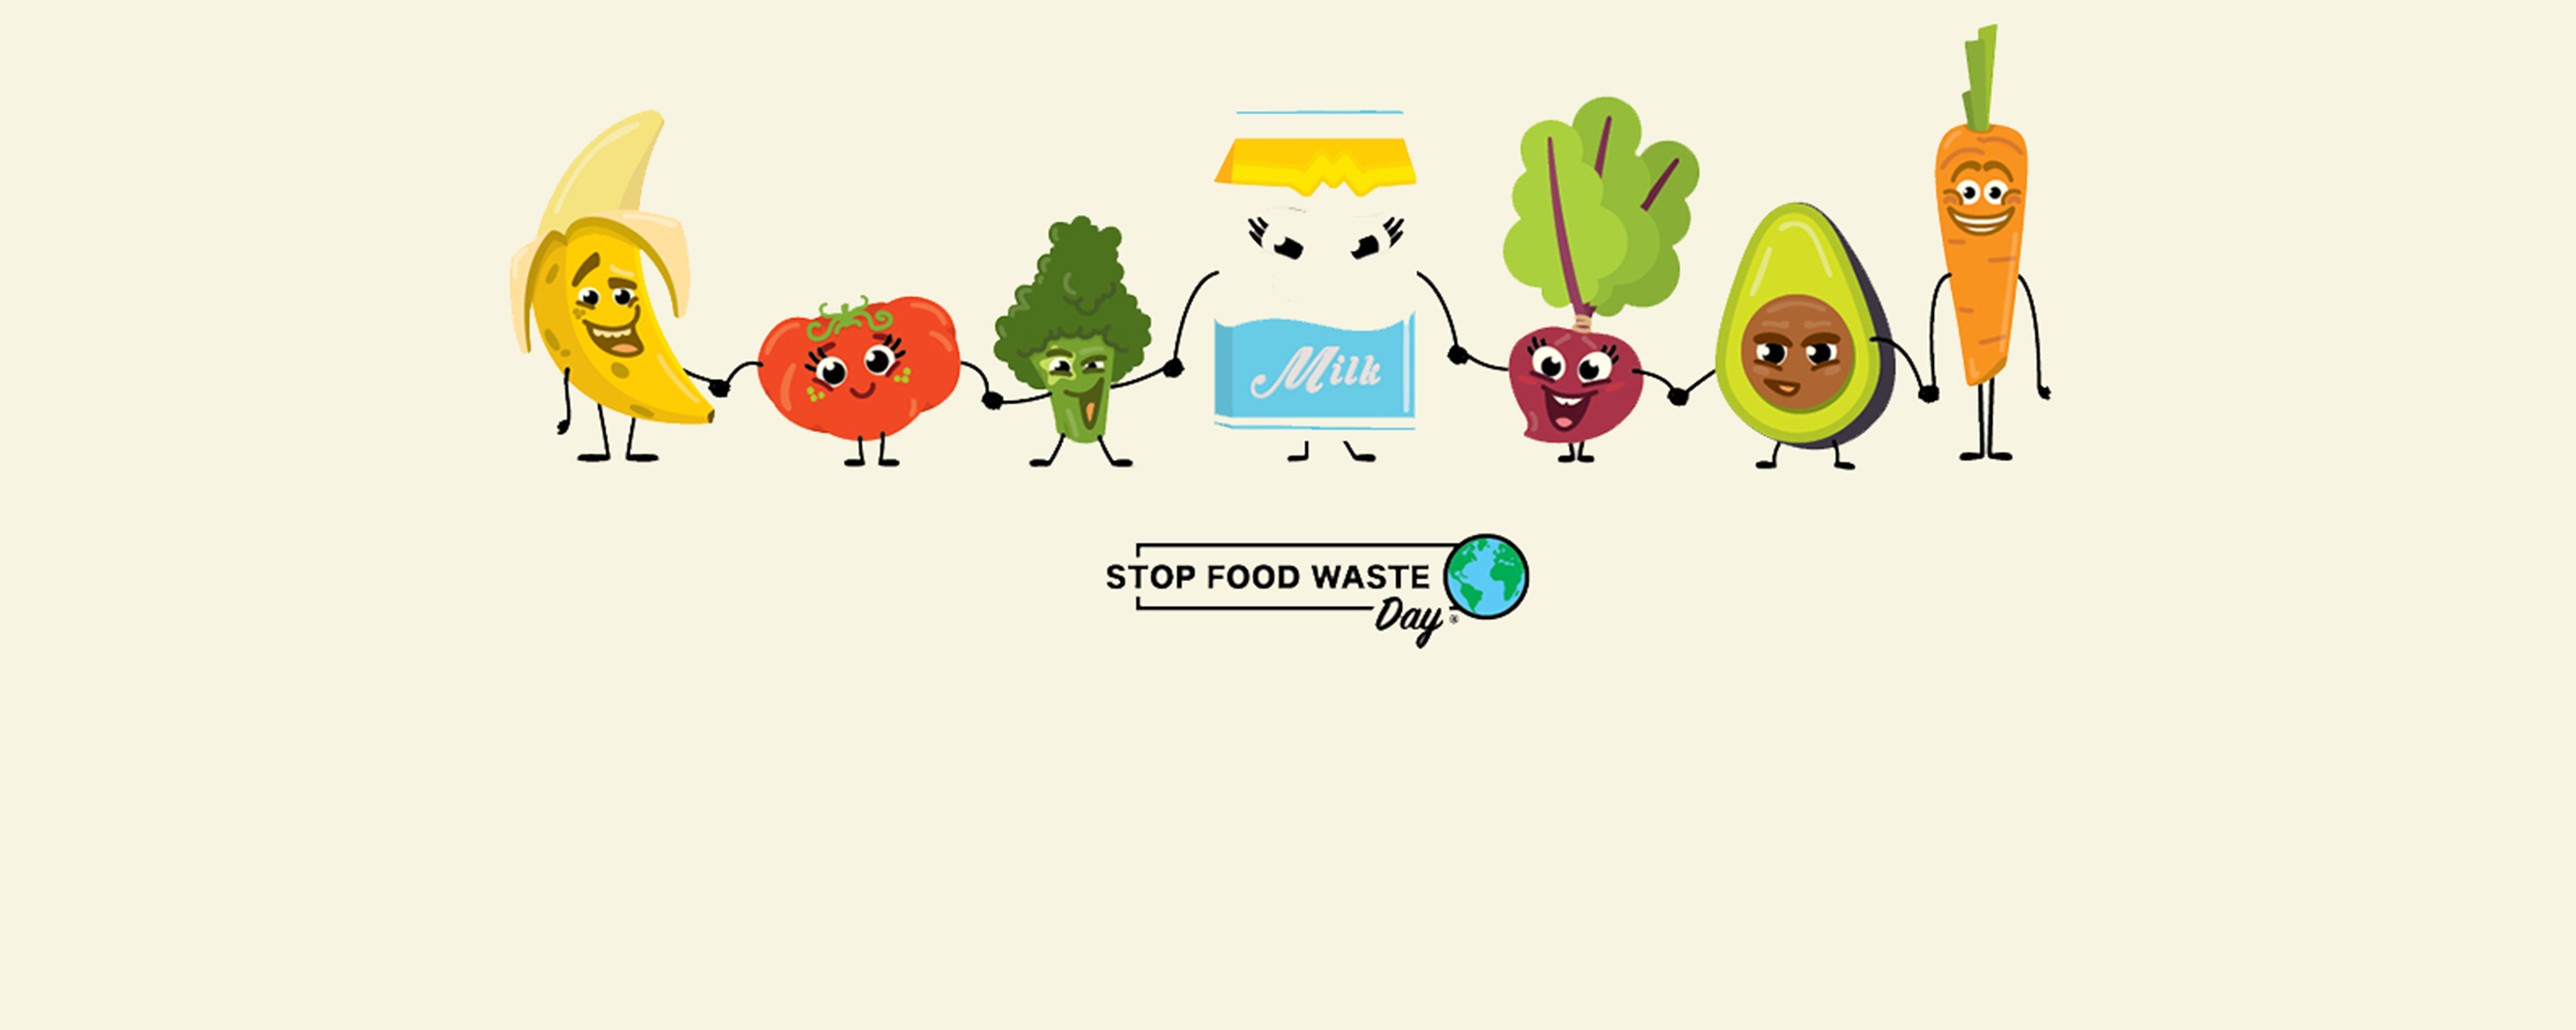 cartoon veggies fighting food waste